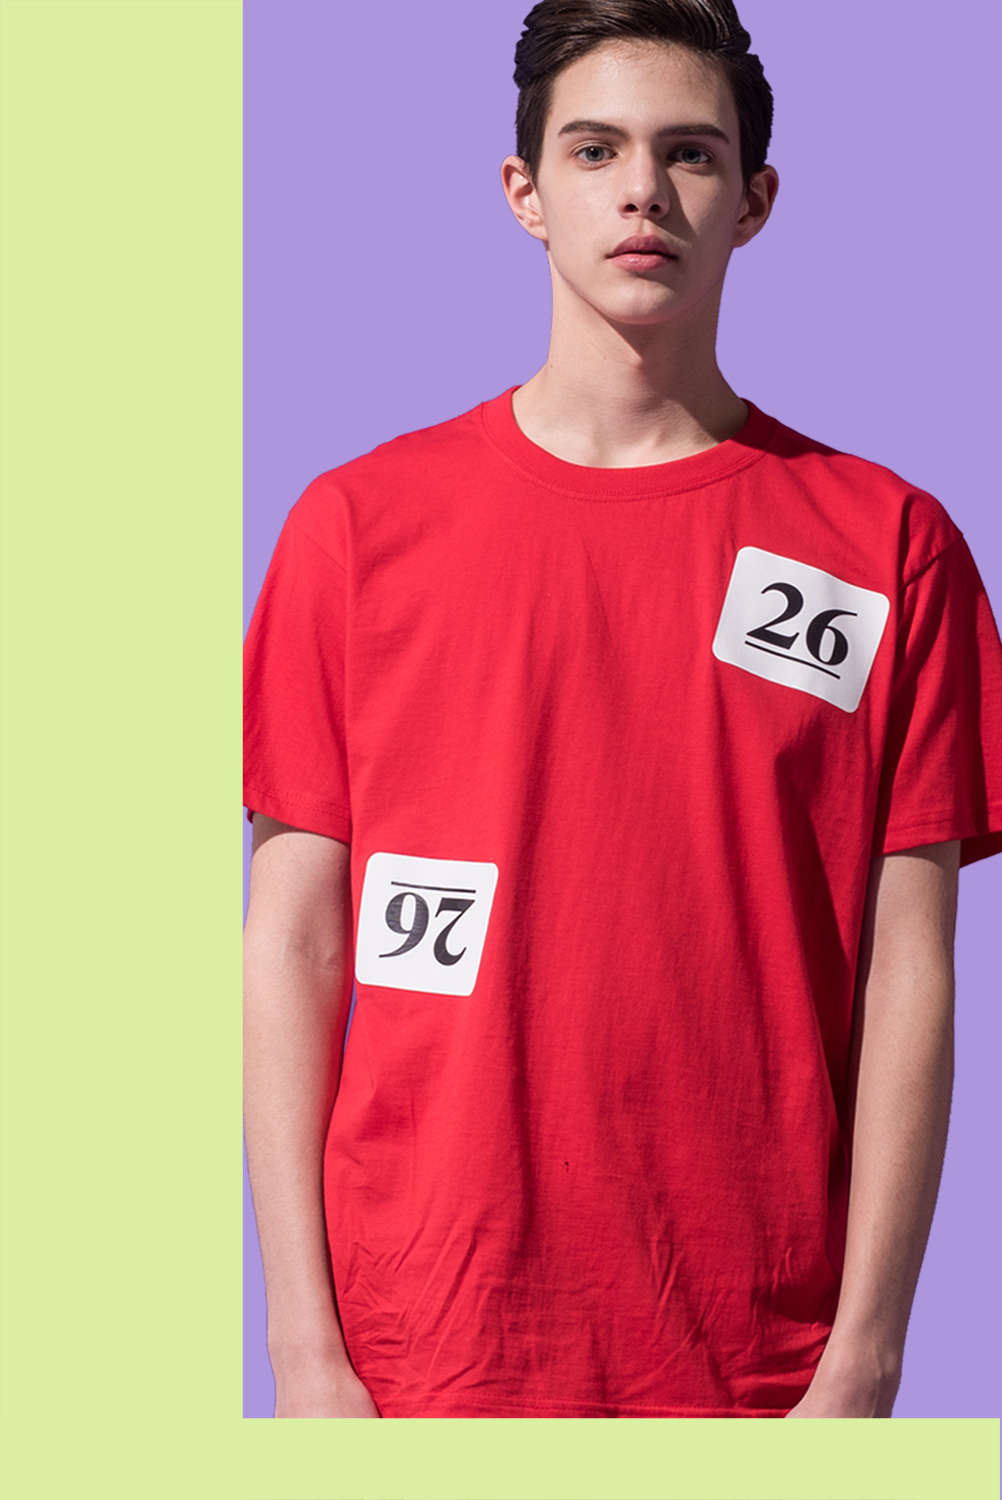 [UNISEX] Lottery Ball NO.26 T-shirt (Red)